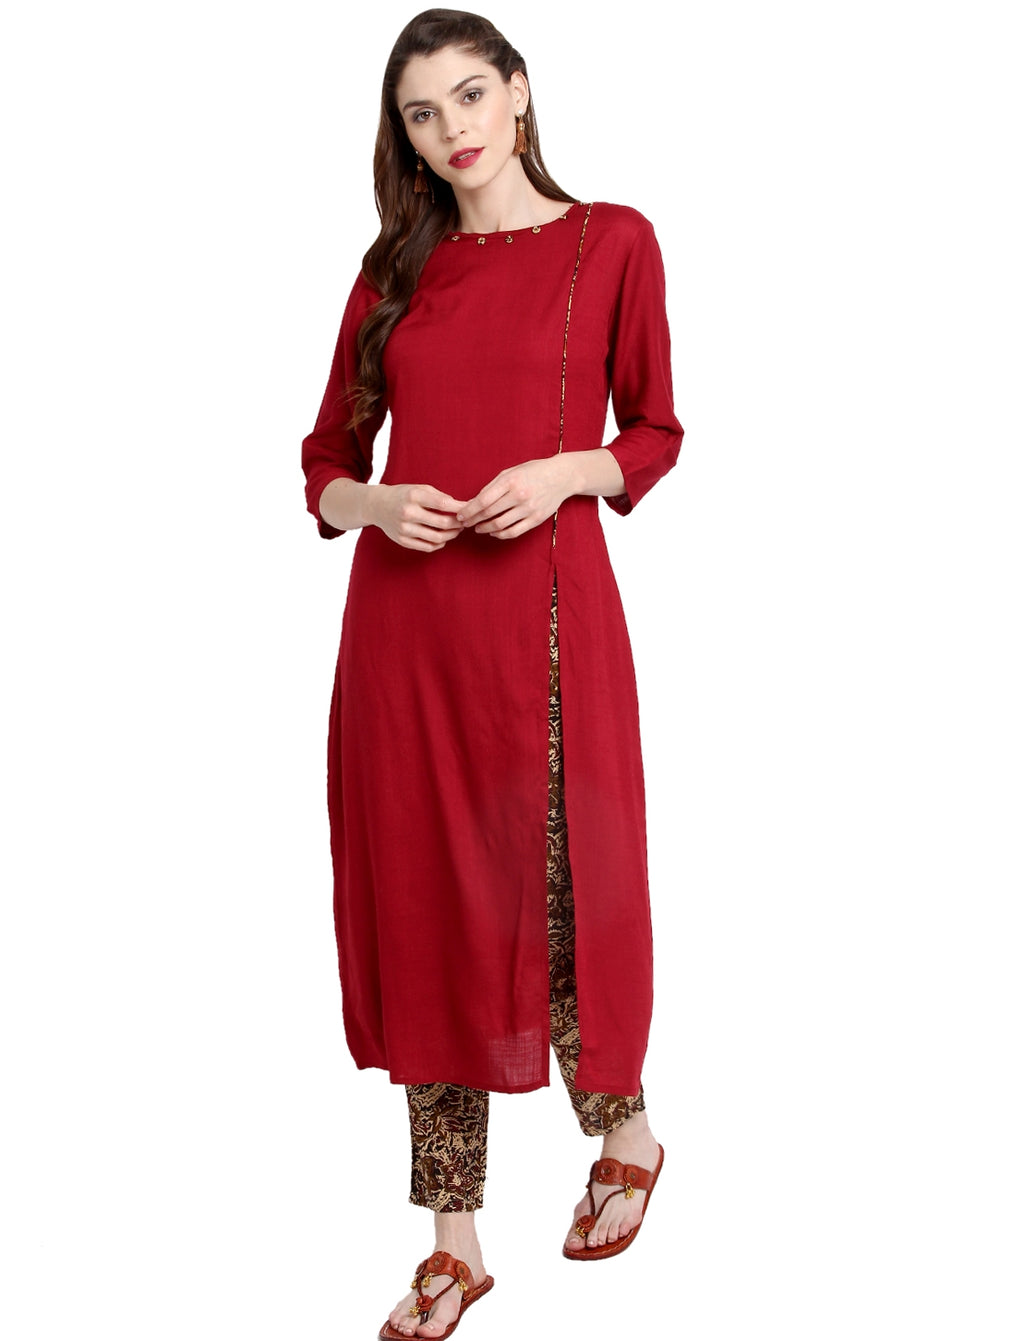 Red Color Rayon Readymade Party Wear Kurtis ( Sizes-36,38,40,42,44) Janasya Catlog SJ-10289